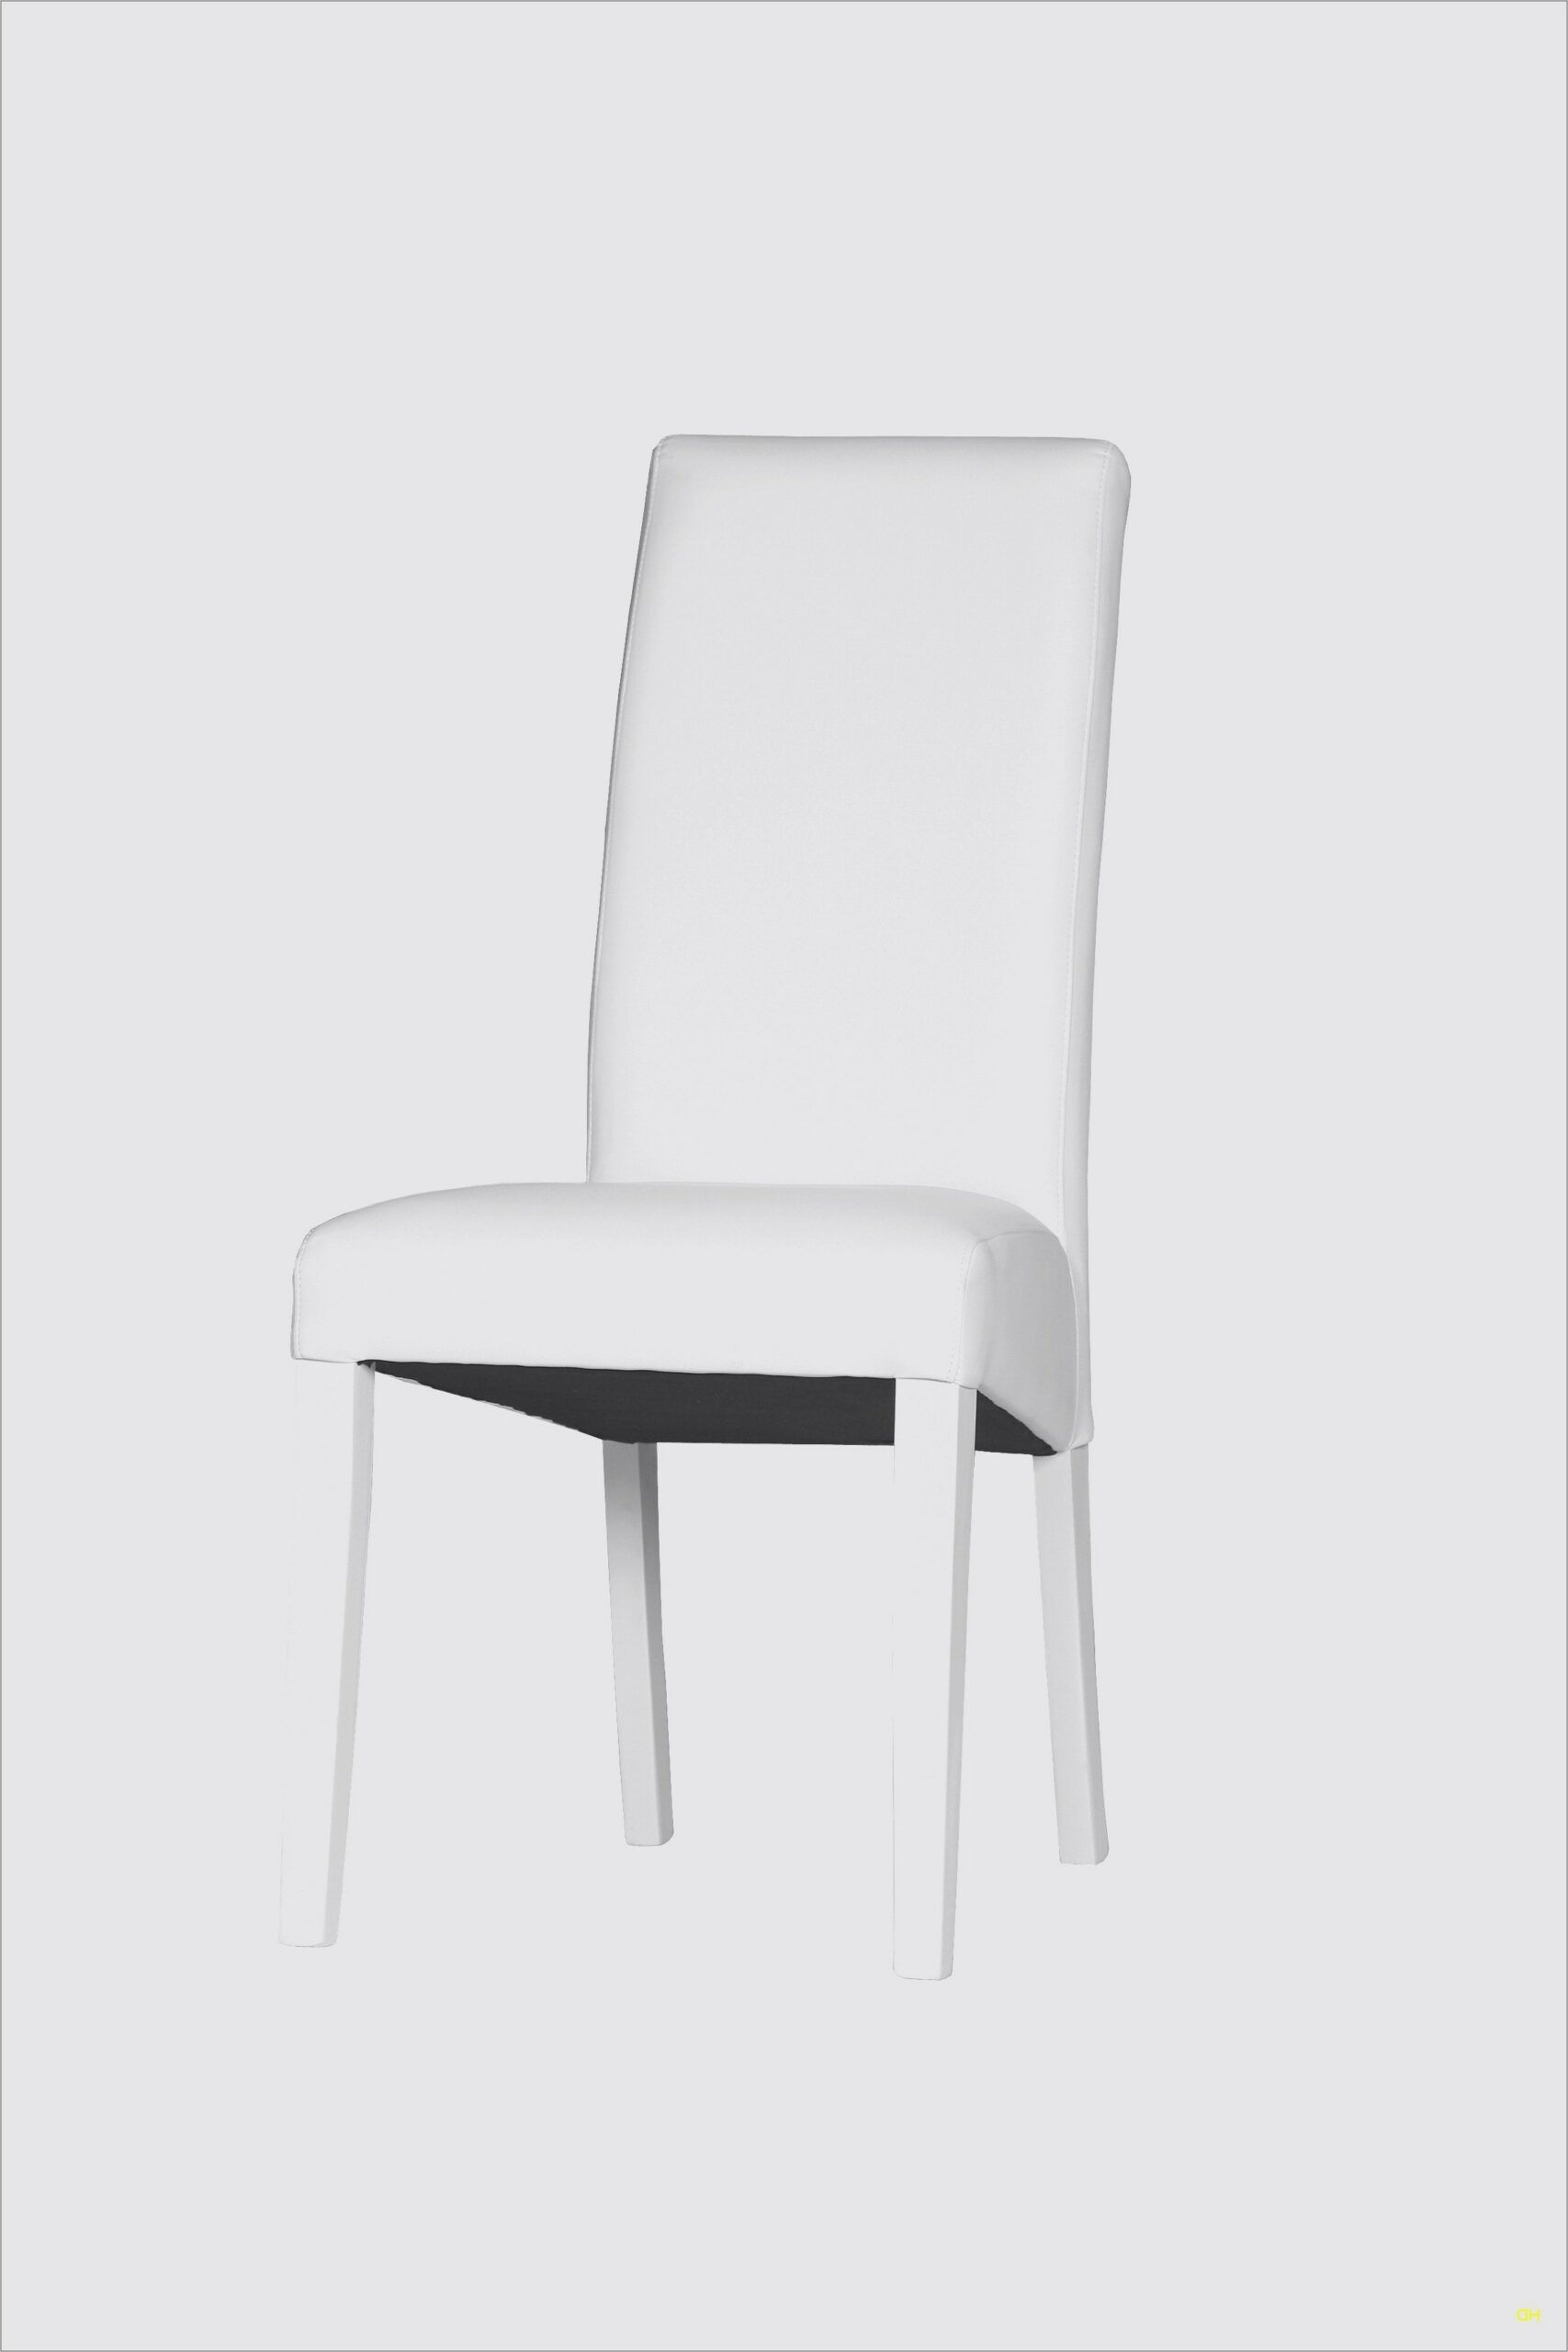 Chaise Salle A Manger Moderne Blanche In 2020 Chair